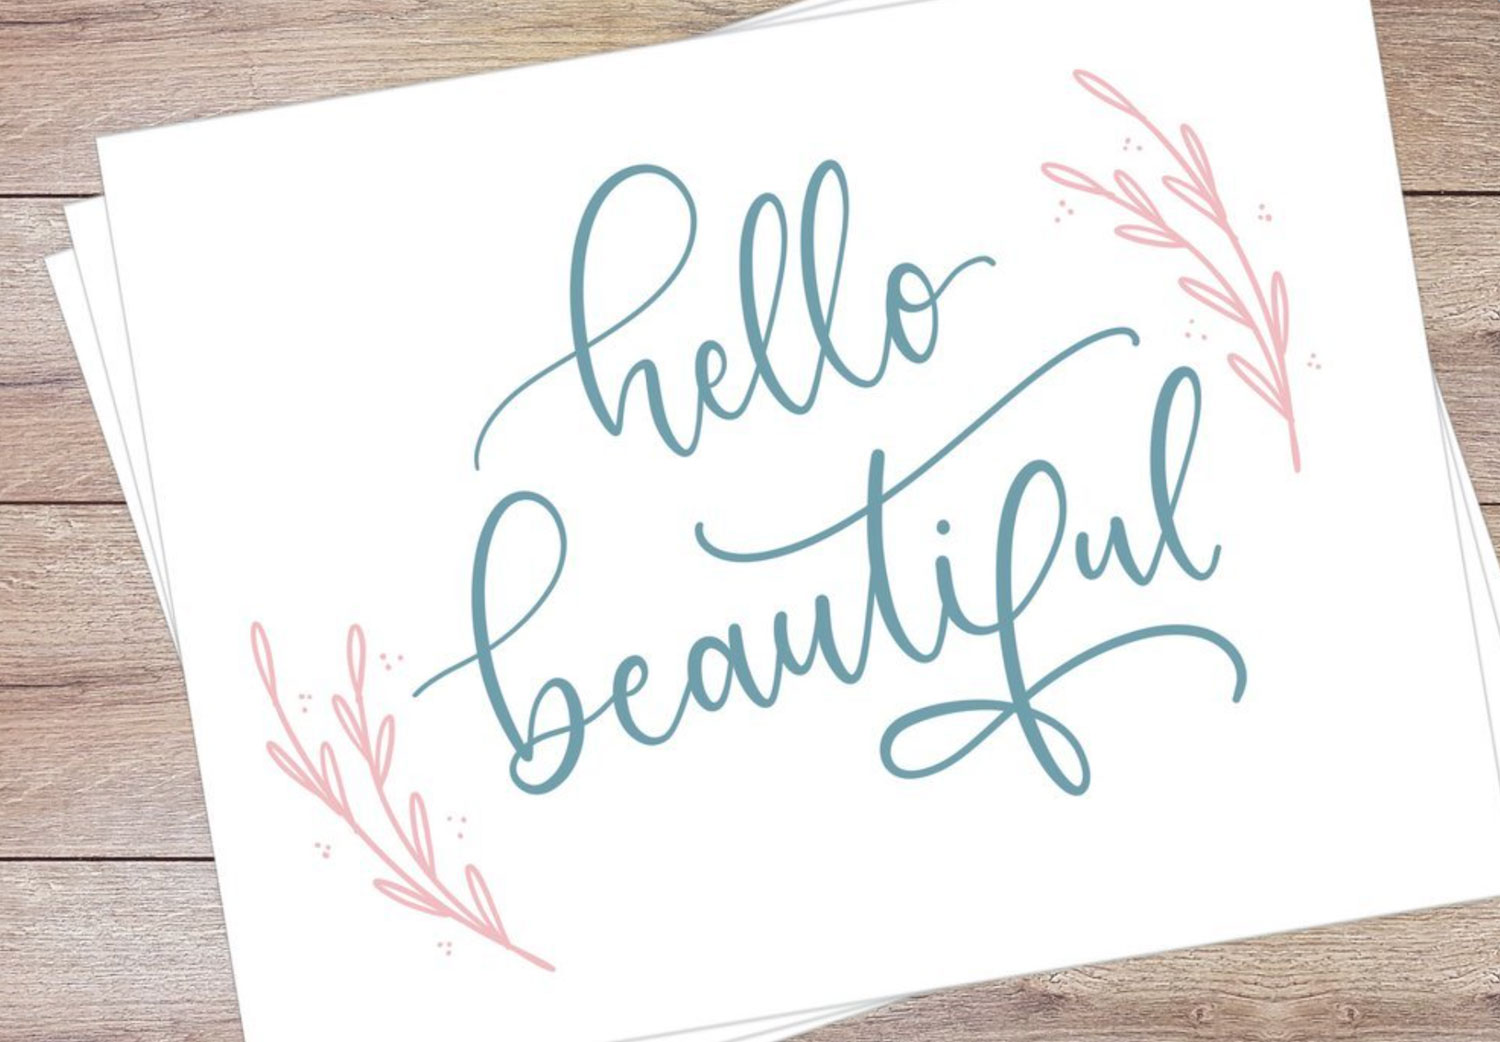 Modern Calligraphy hello beautiful for Best Bets